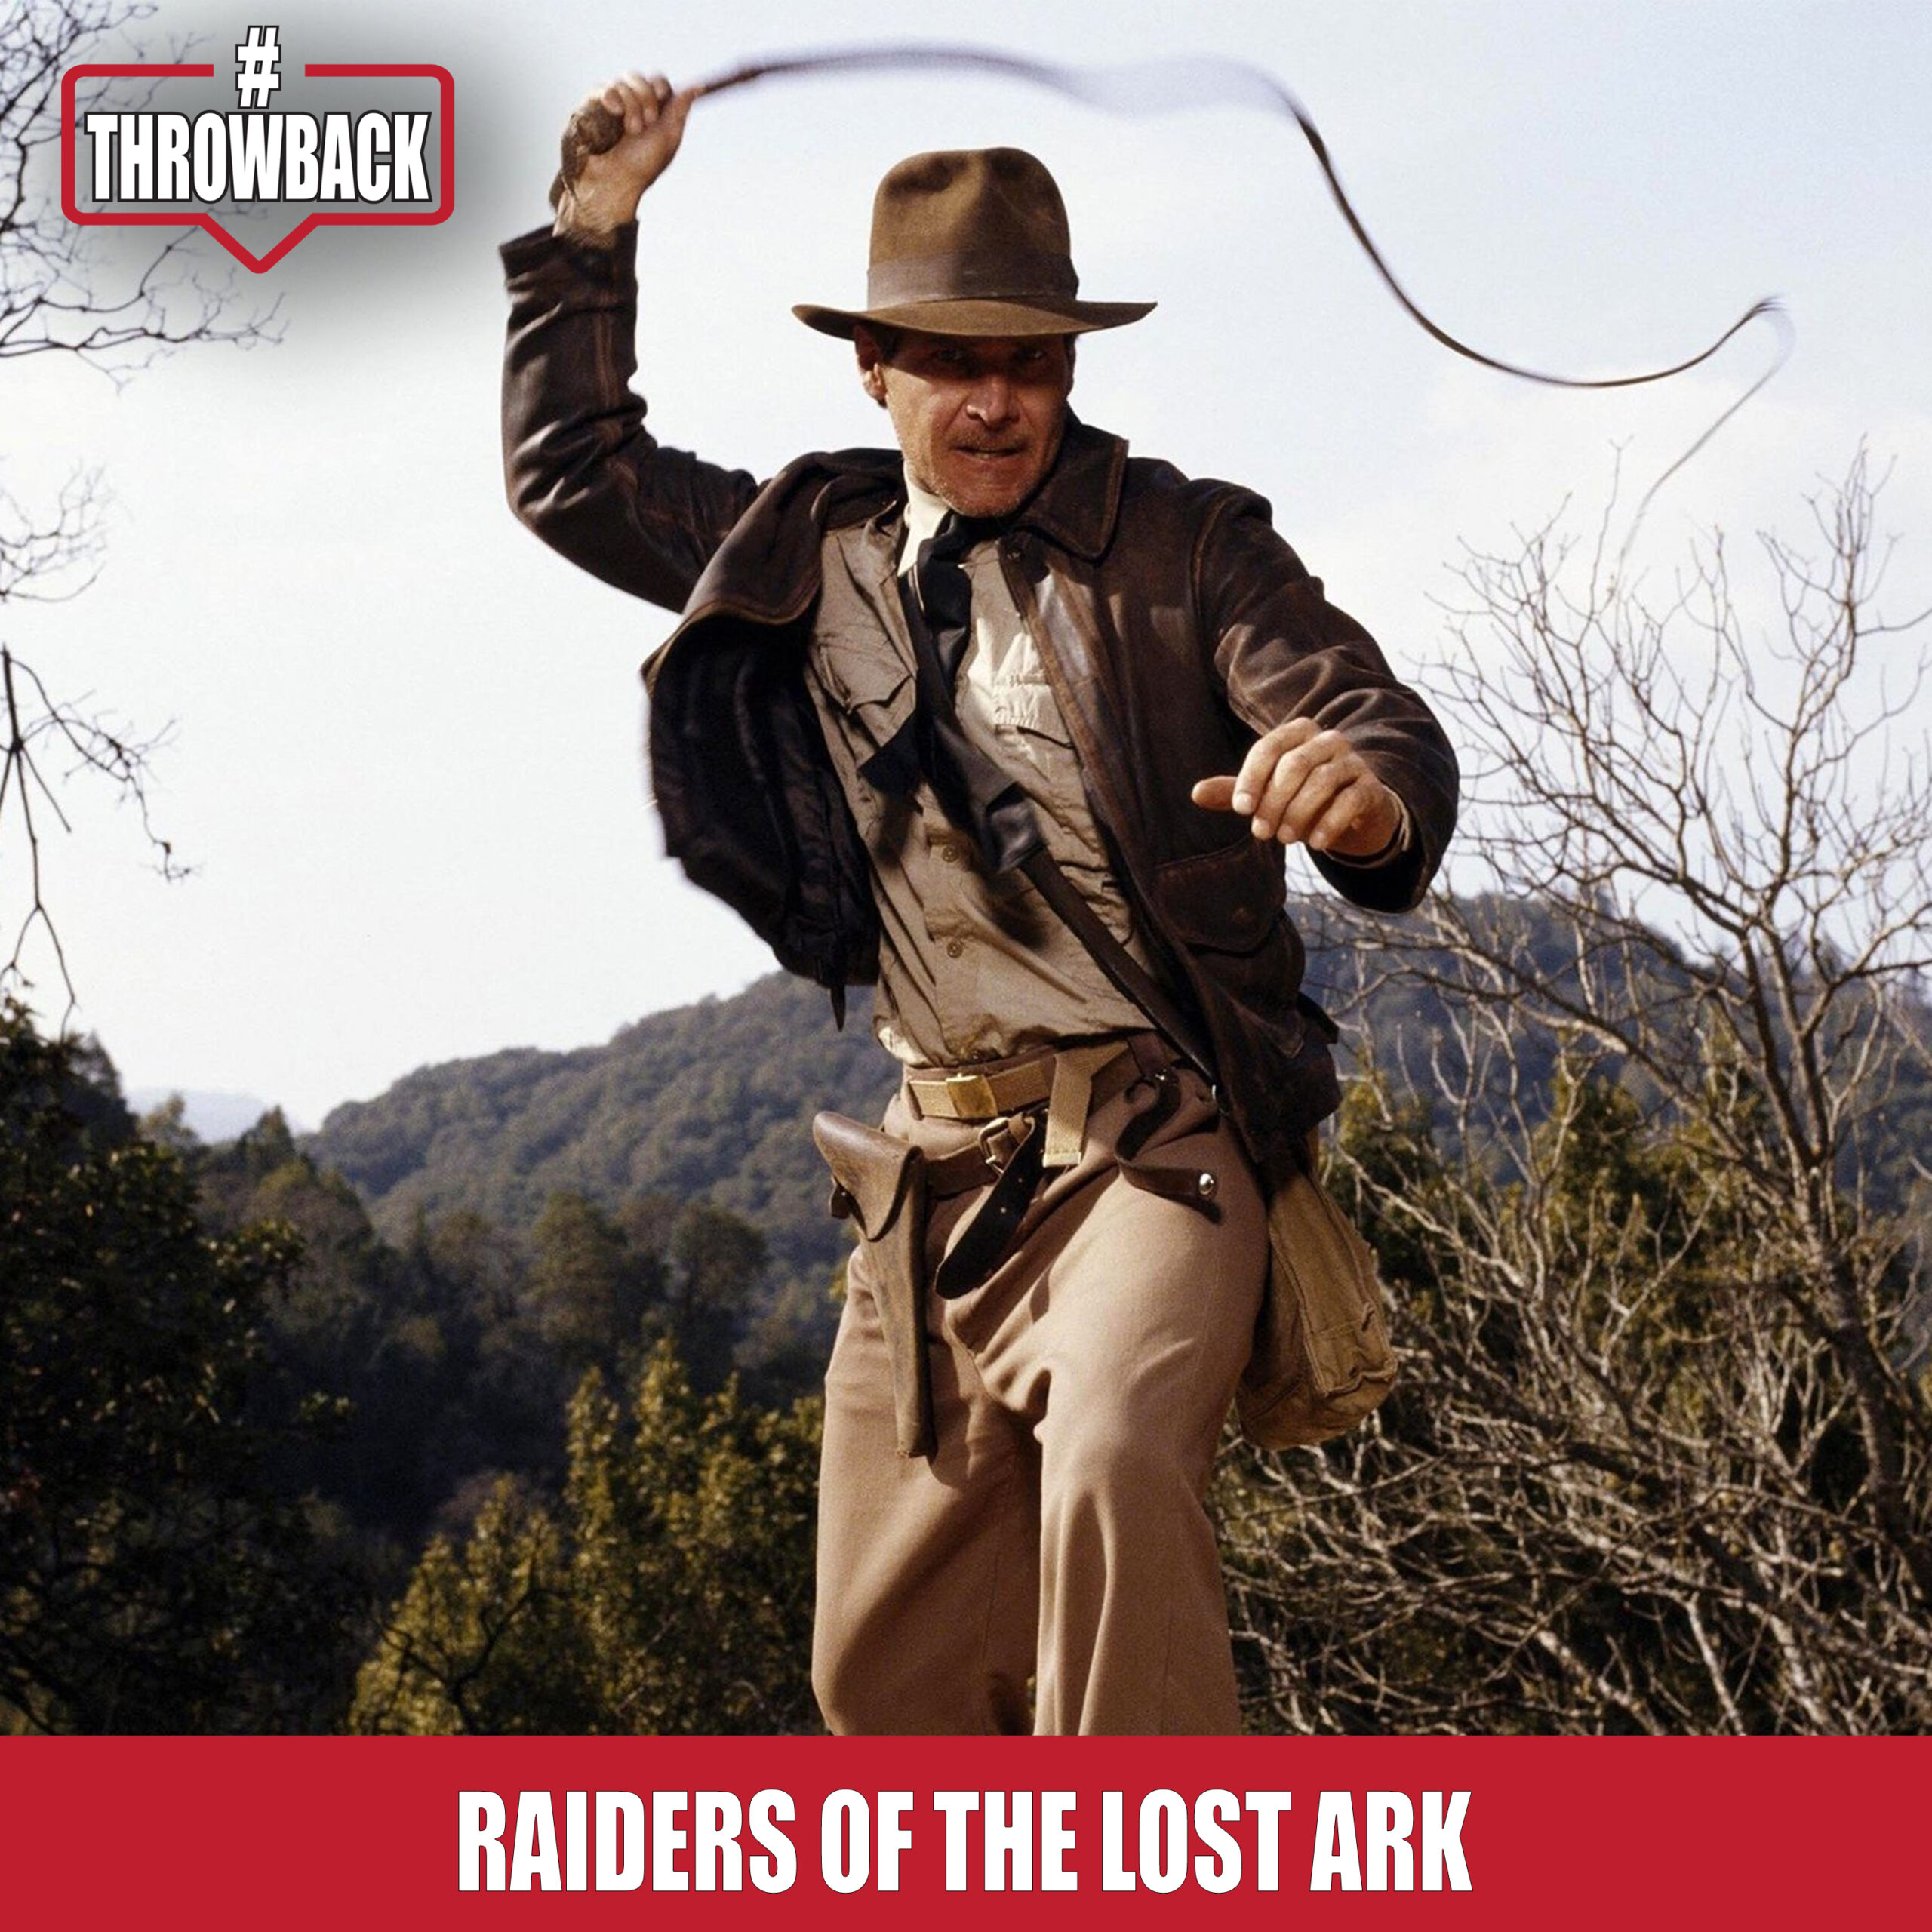 Throwback #48 – Raiders of the Lost Ark